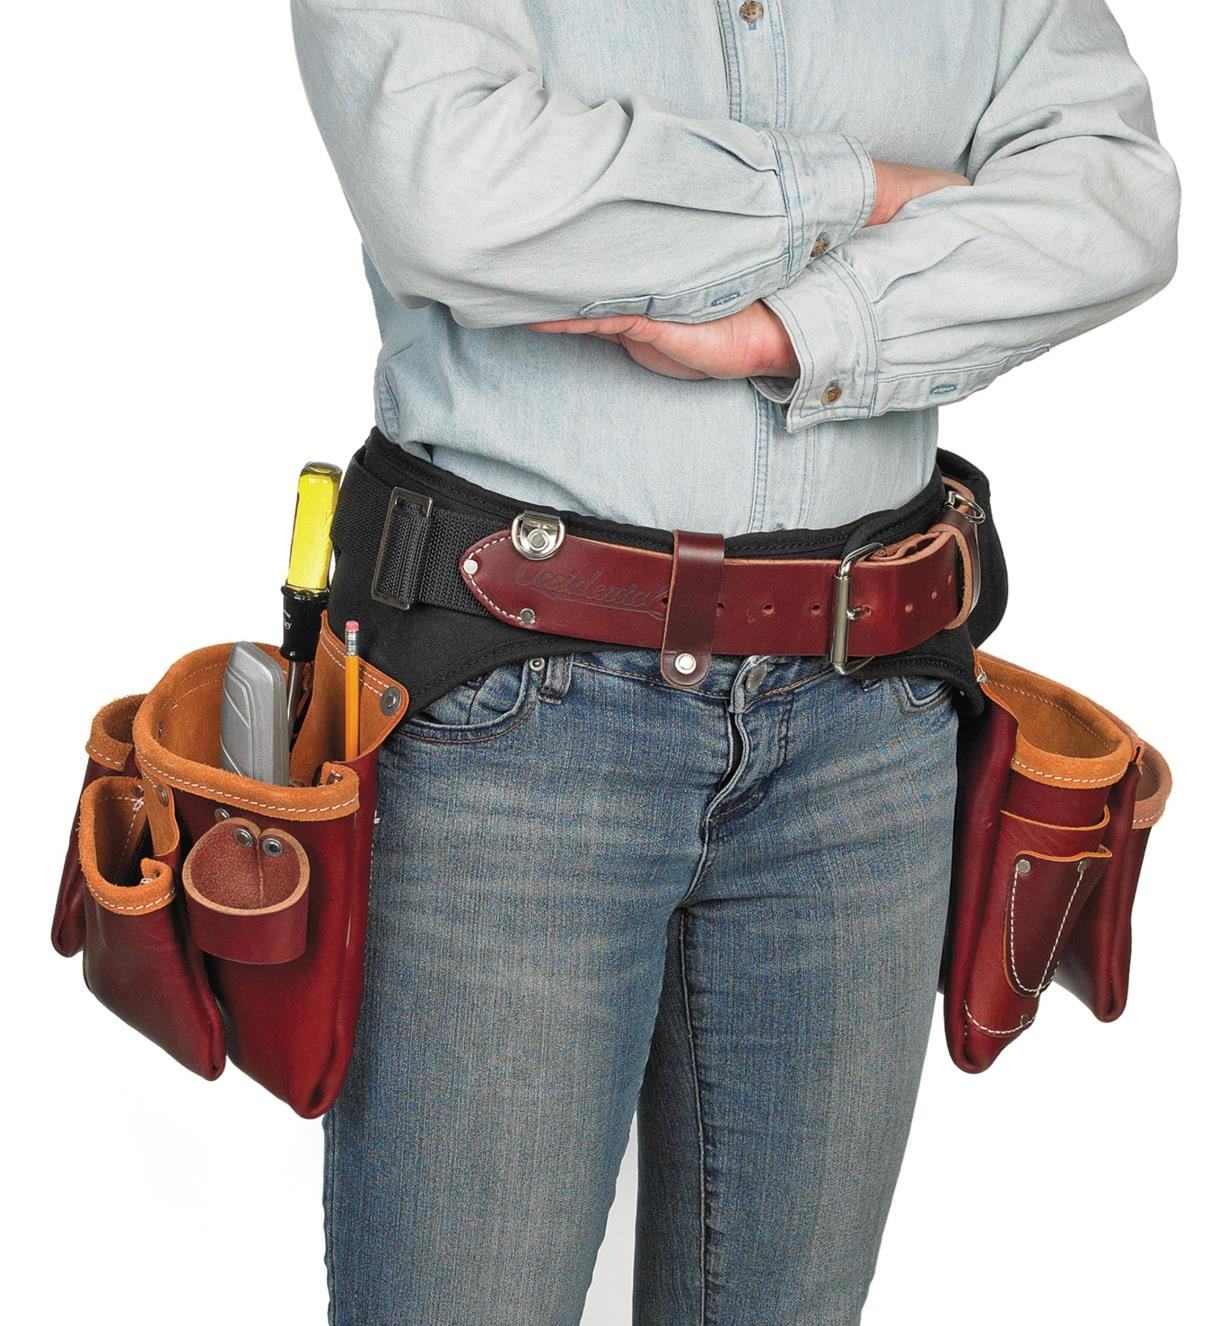 Front view of a person wearing an Adjust-to-Fit Pro Framer Set